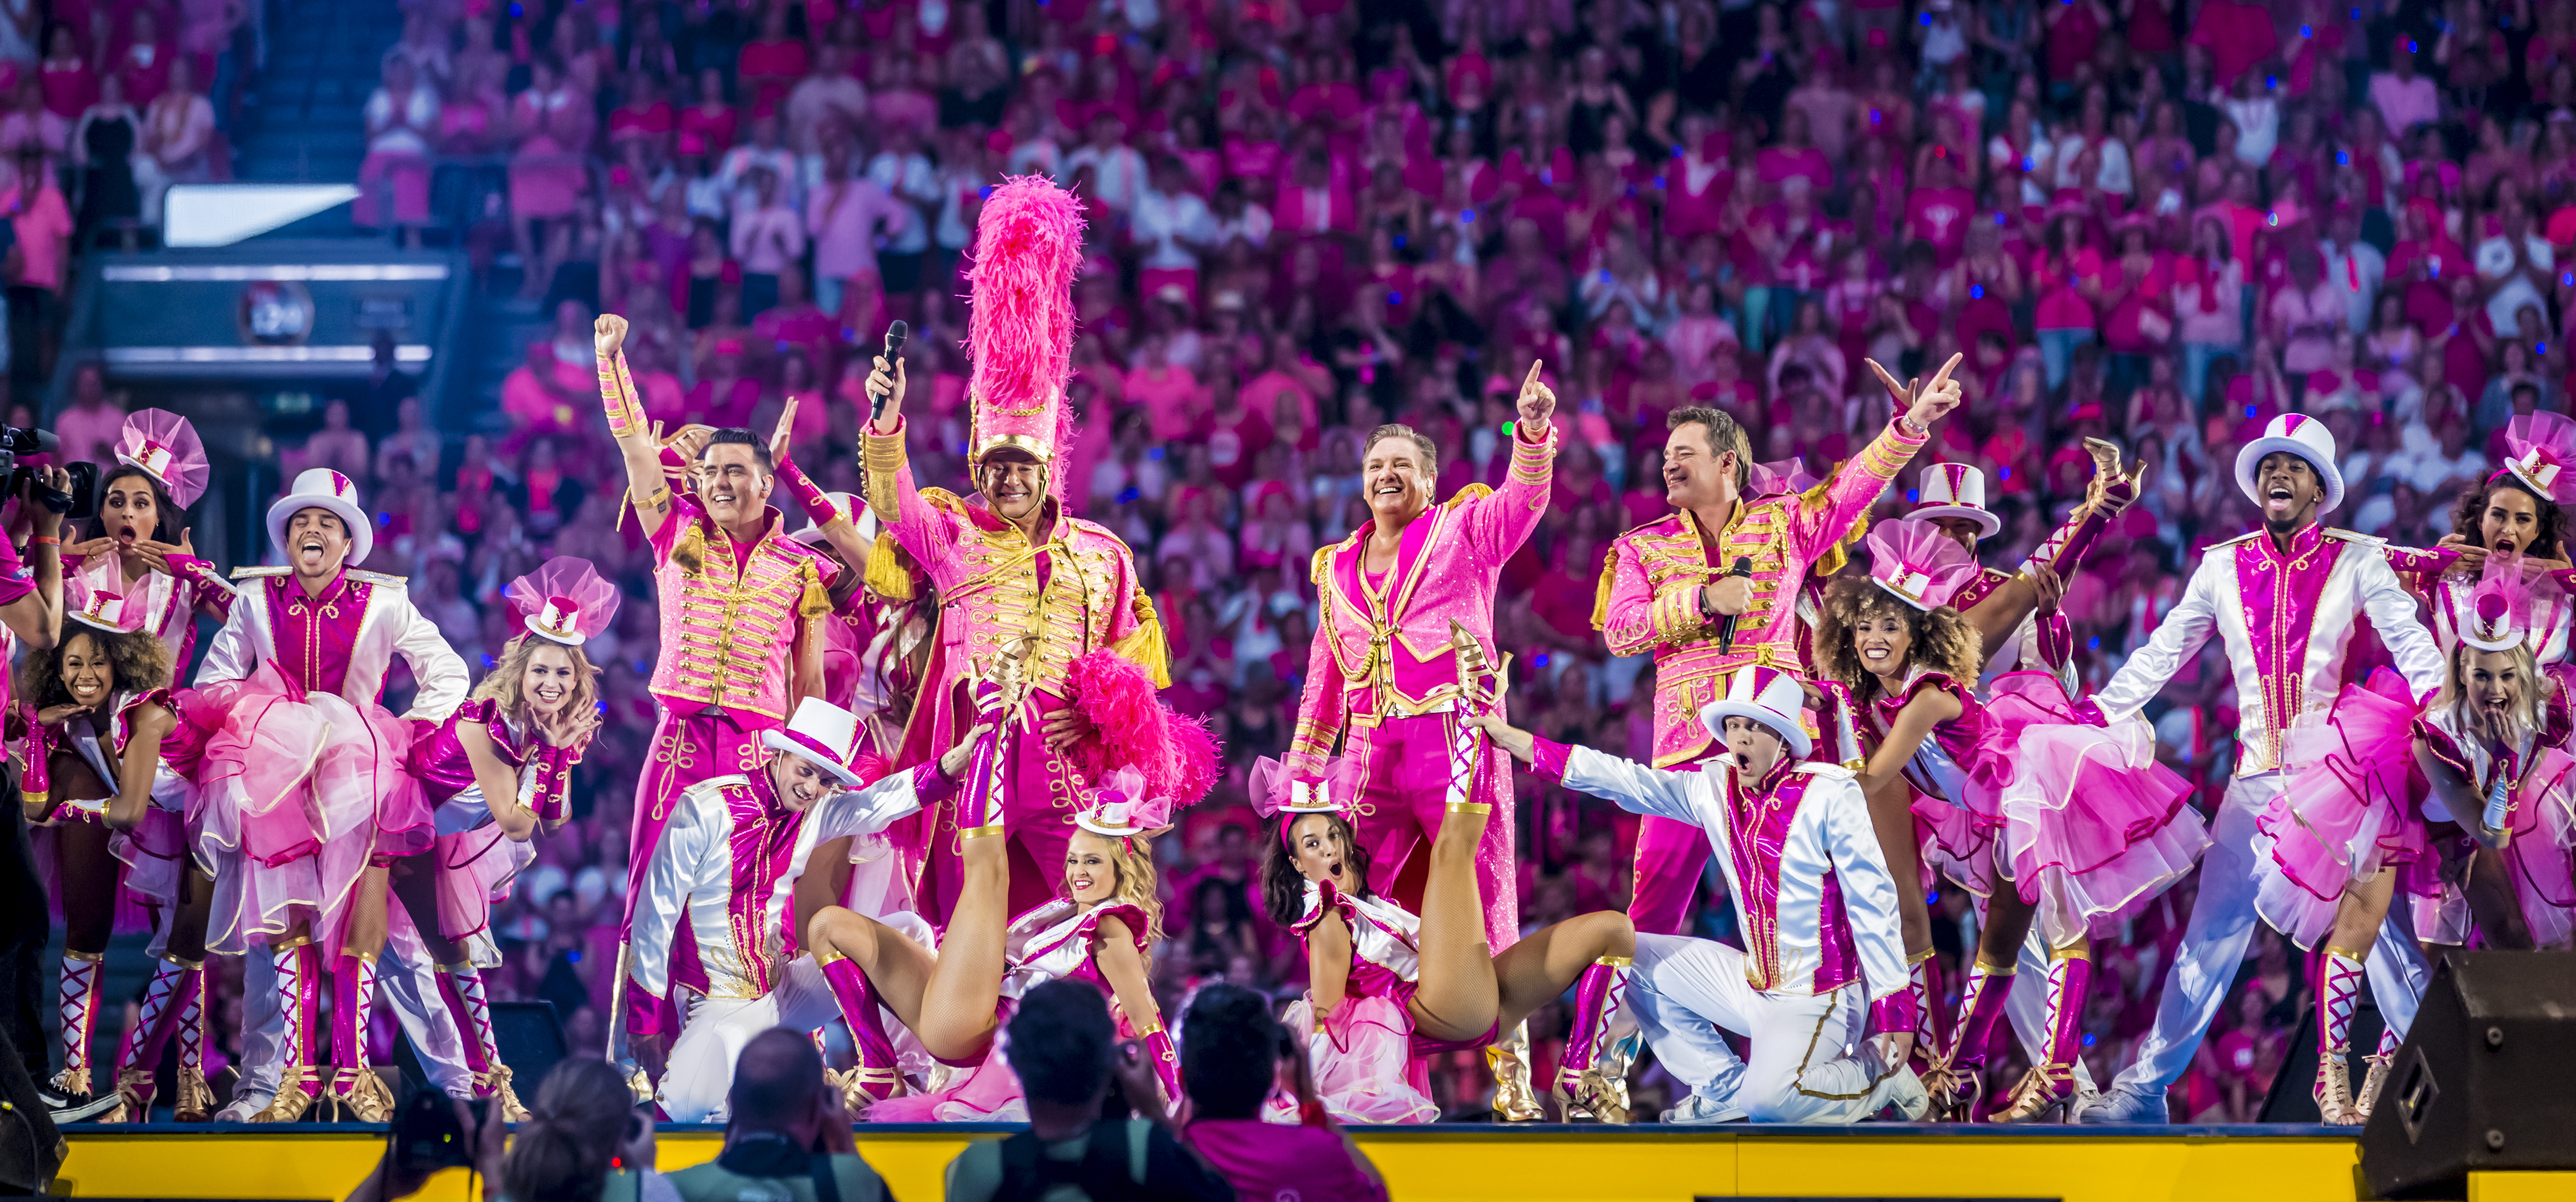 Gerard Joling bij Toppers in roze outfits